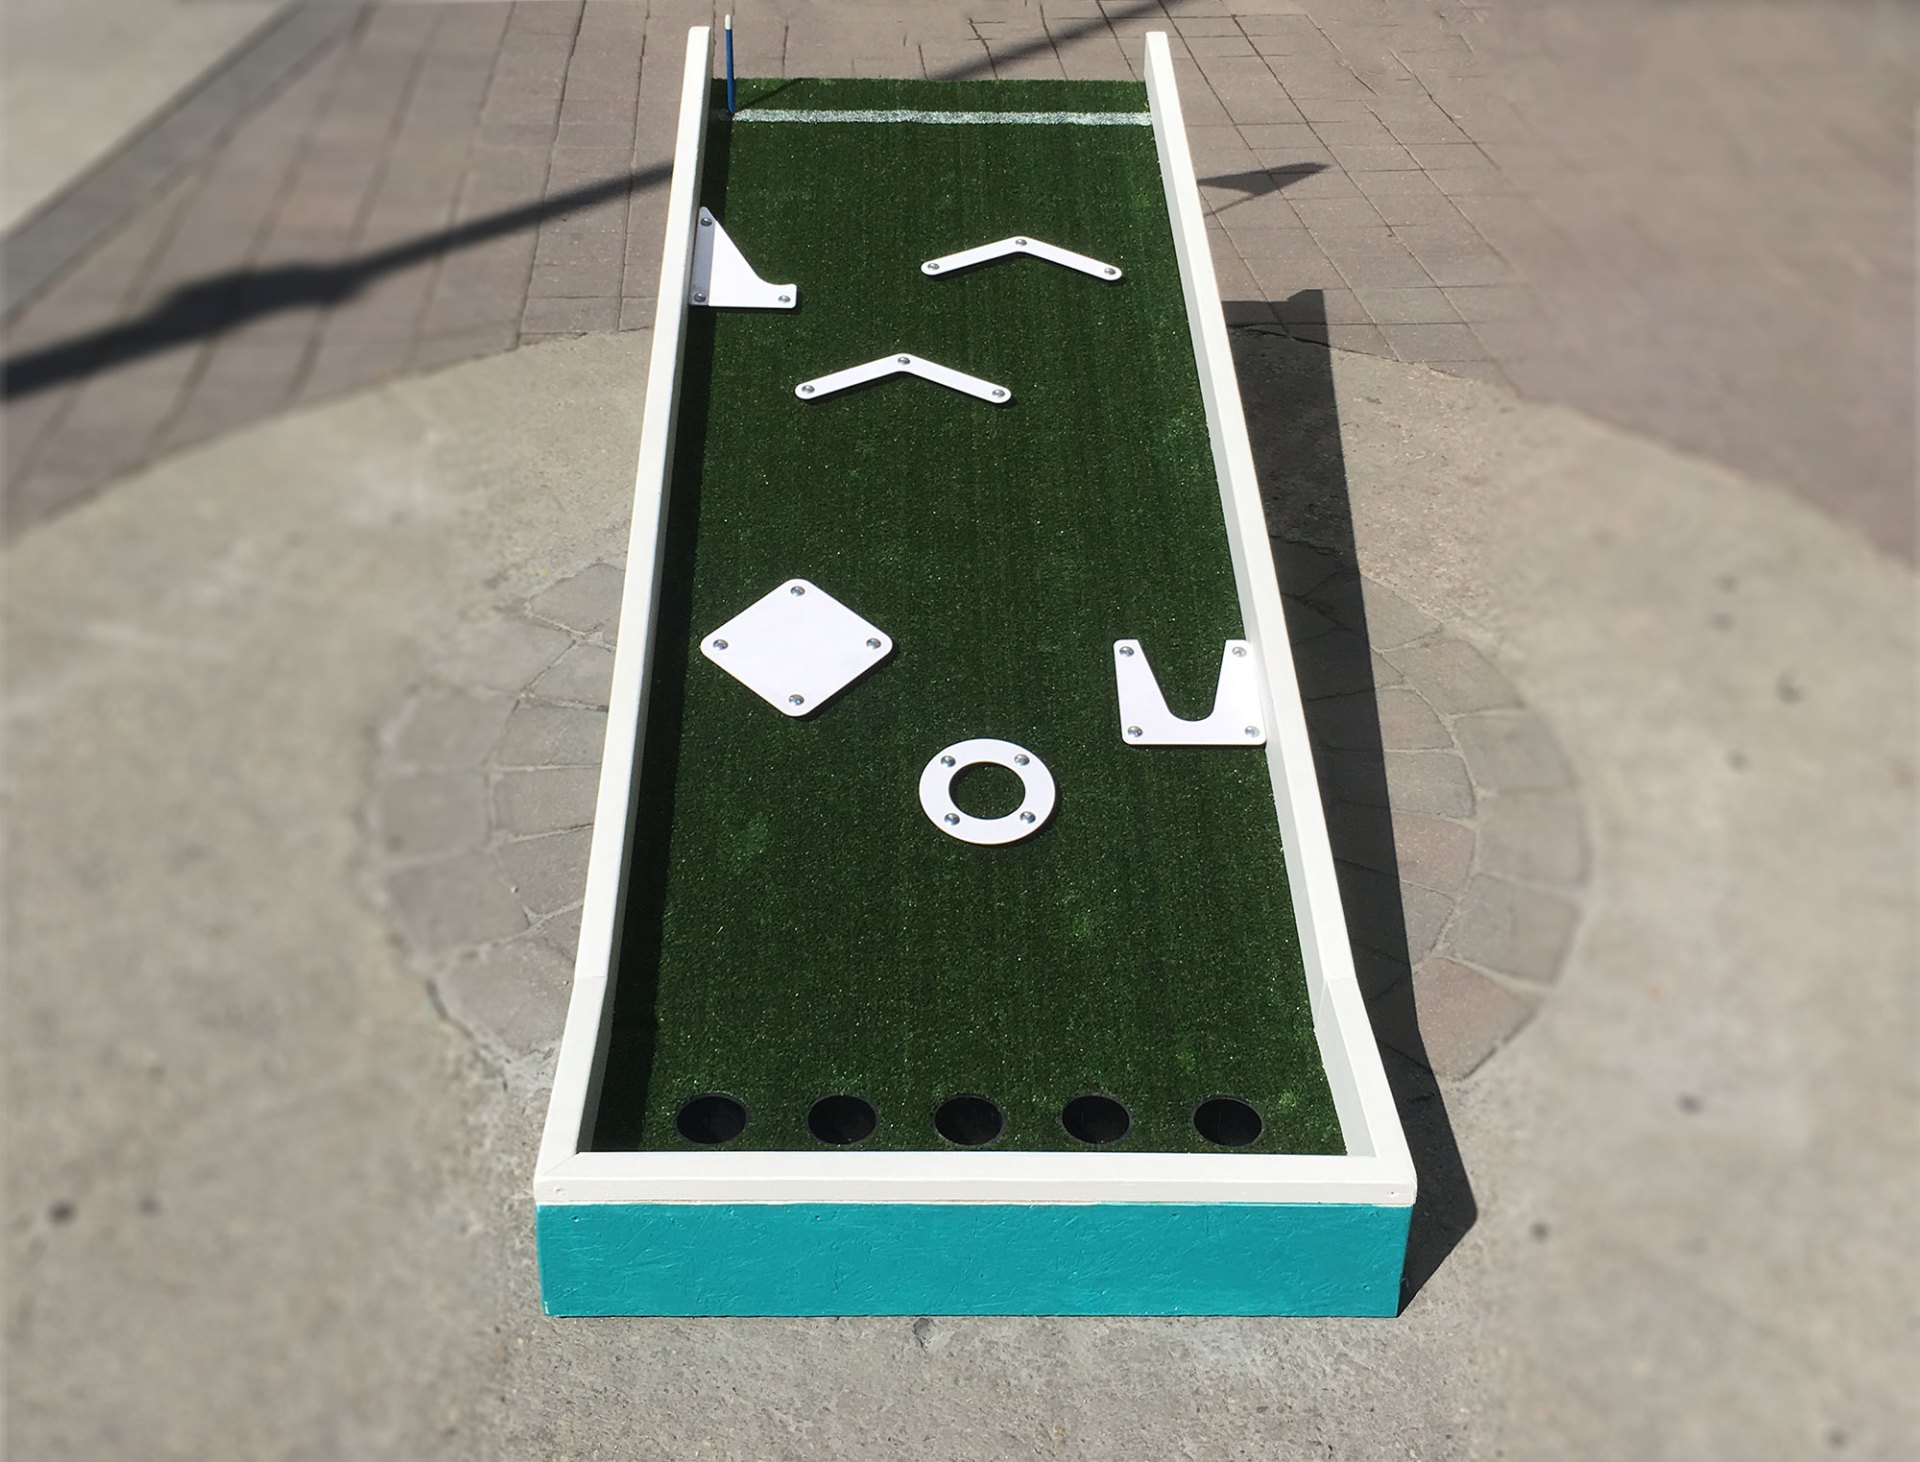 Top view of Mini Peg Golf Hole 6 at Mountain Equipment Co-op